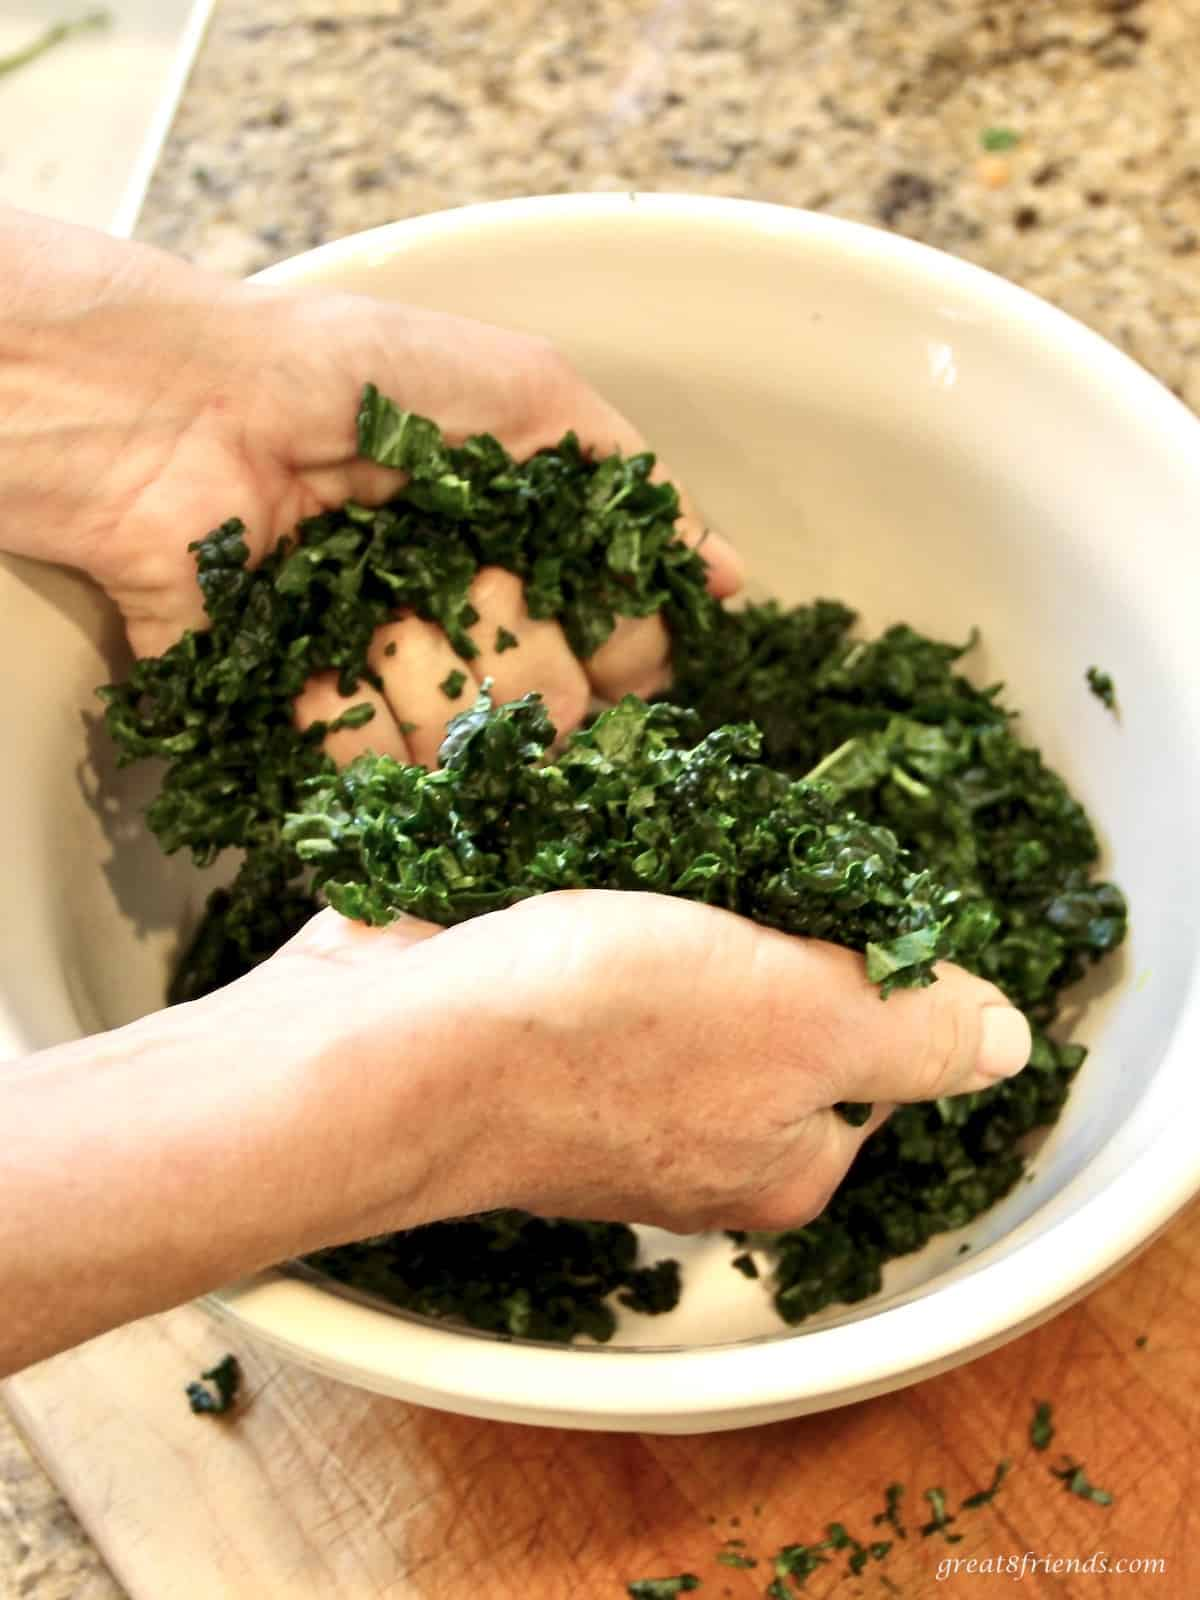 A bowl of torn tuscan kale leaves that are being massaged with someones hands.